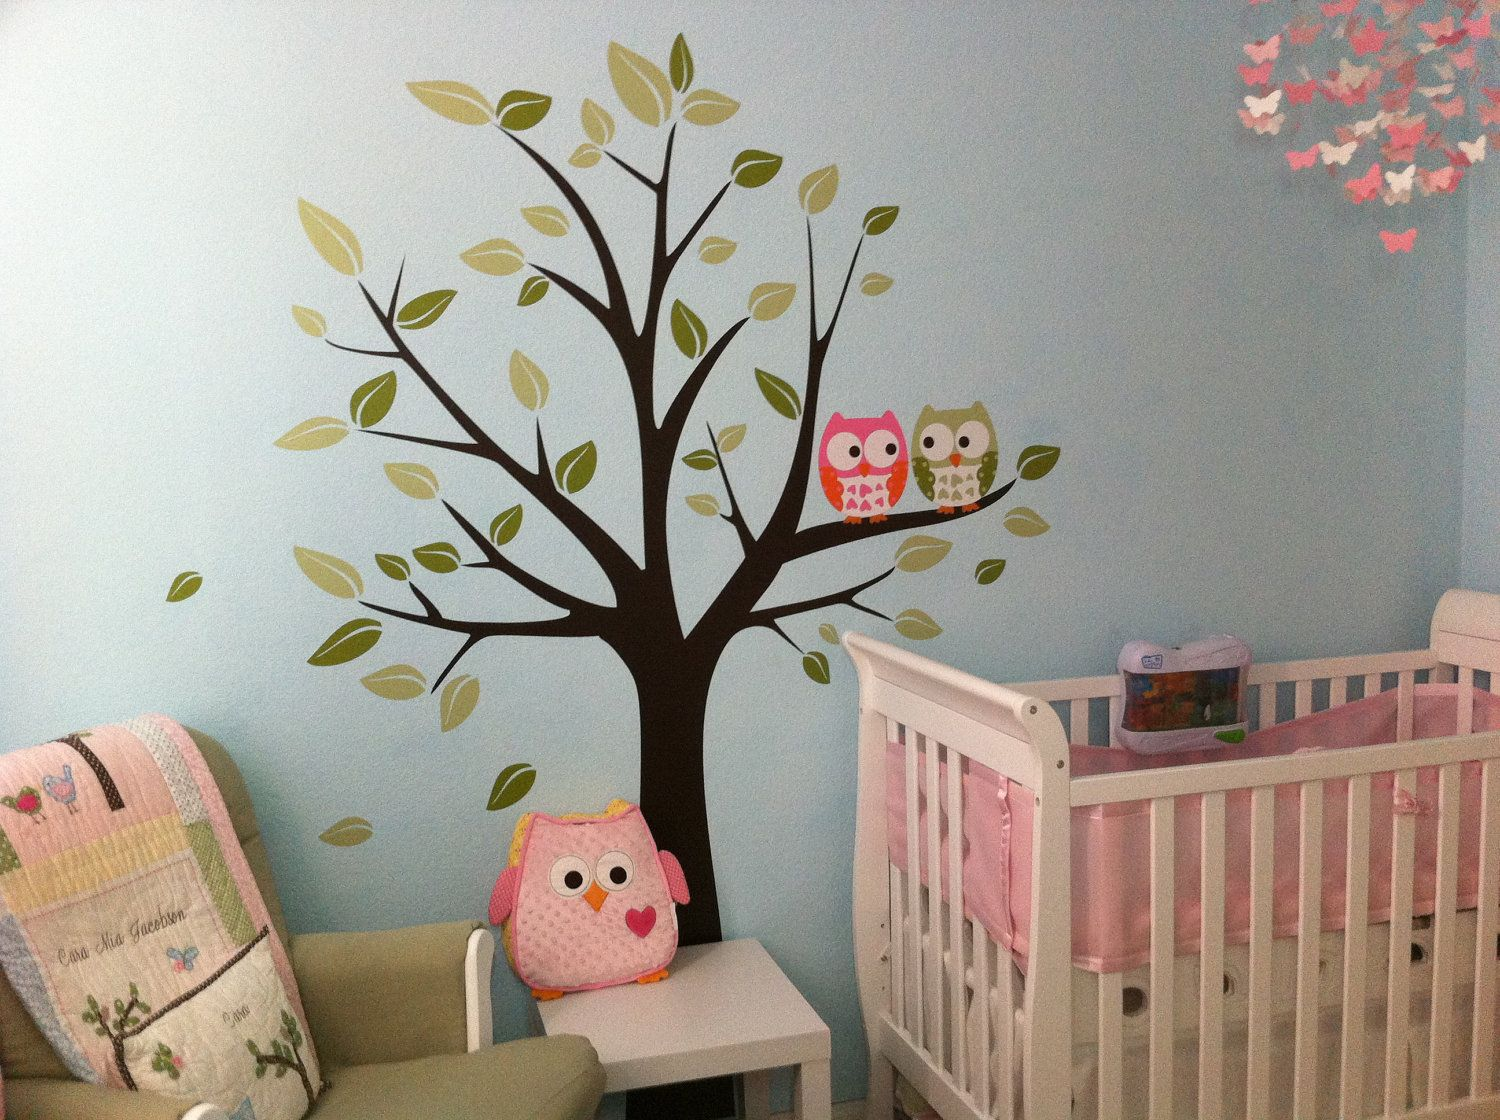 Wall decals owls on a tree baby nursery decals wall decals wall decals owls on a tree baby nursery decals amipublicfo Gallery